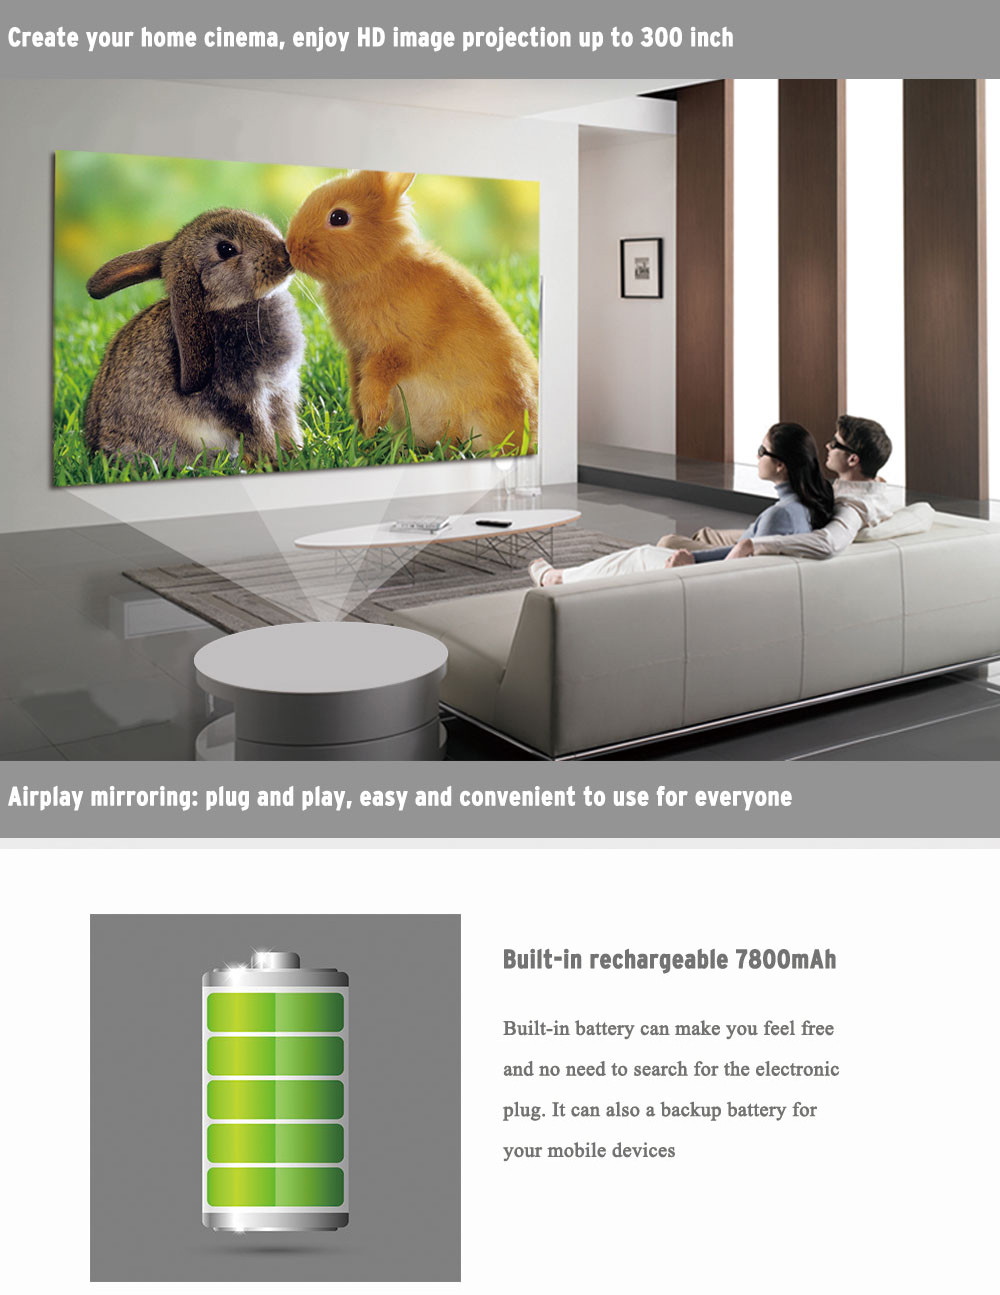 WOWOTO T8E 2000 Lumens Multimedia Home Theater Projector 7800mAh Battery Android 4.4 Support 1080P